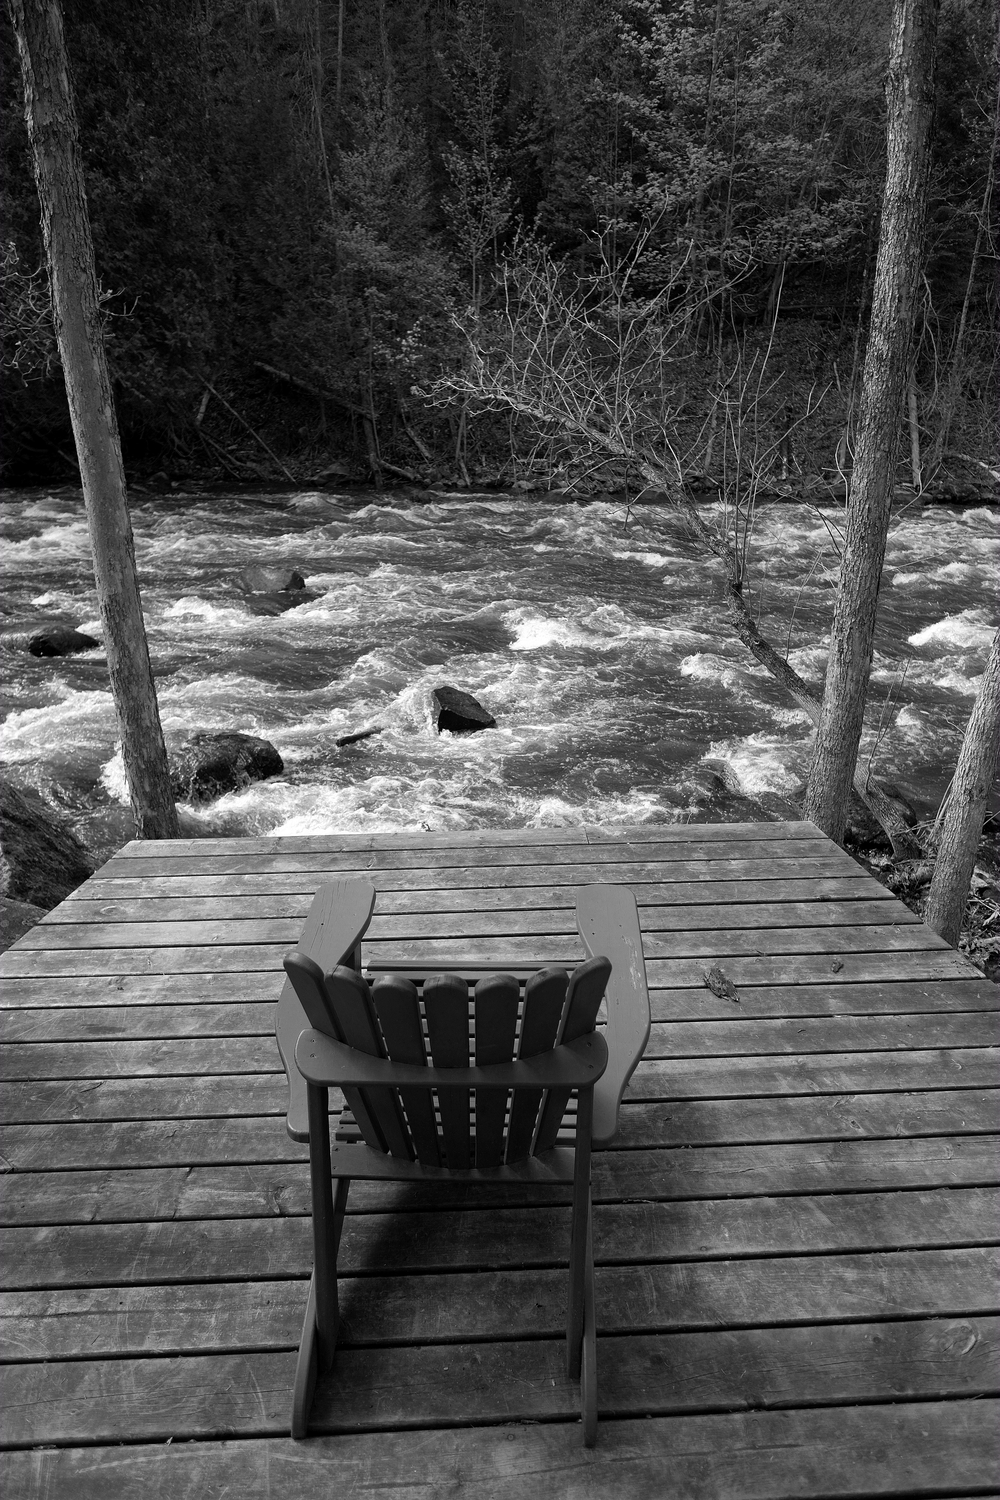 Deck. Chair. Fujifilm X-E1 with 14mm. ISO 200, 1/420 sec at f/2.8.